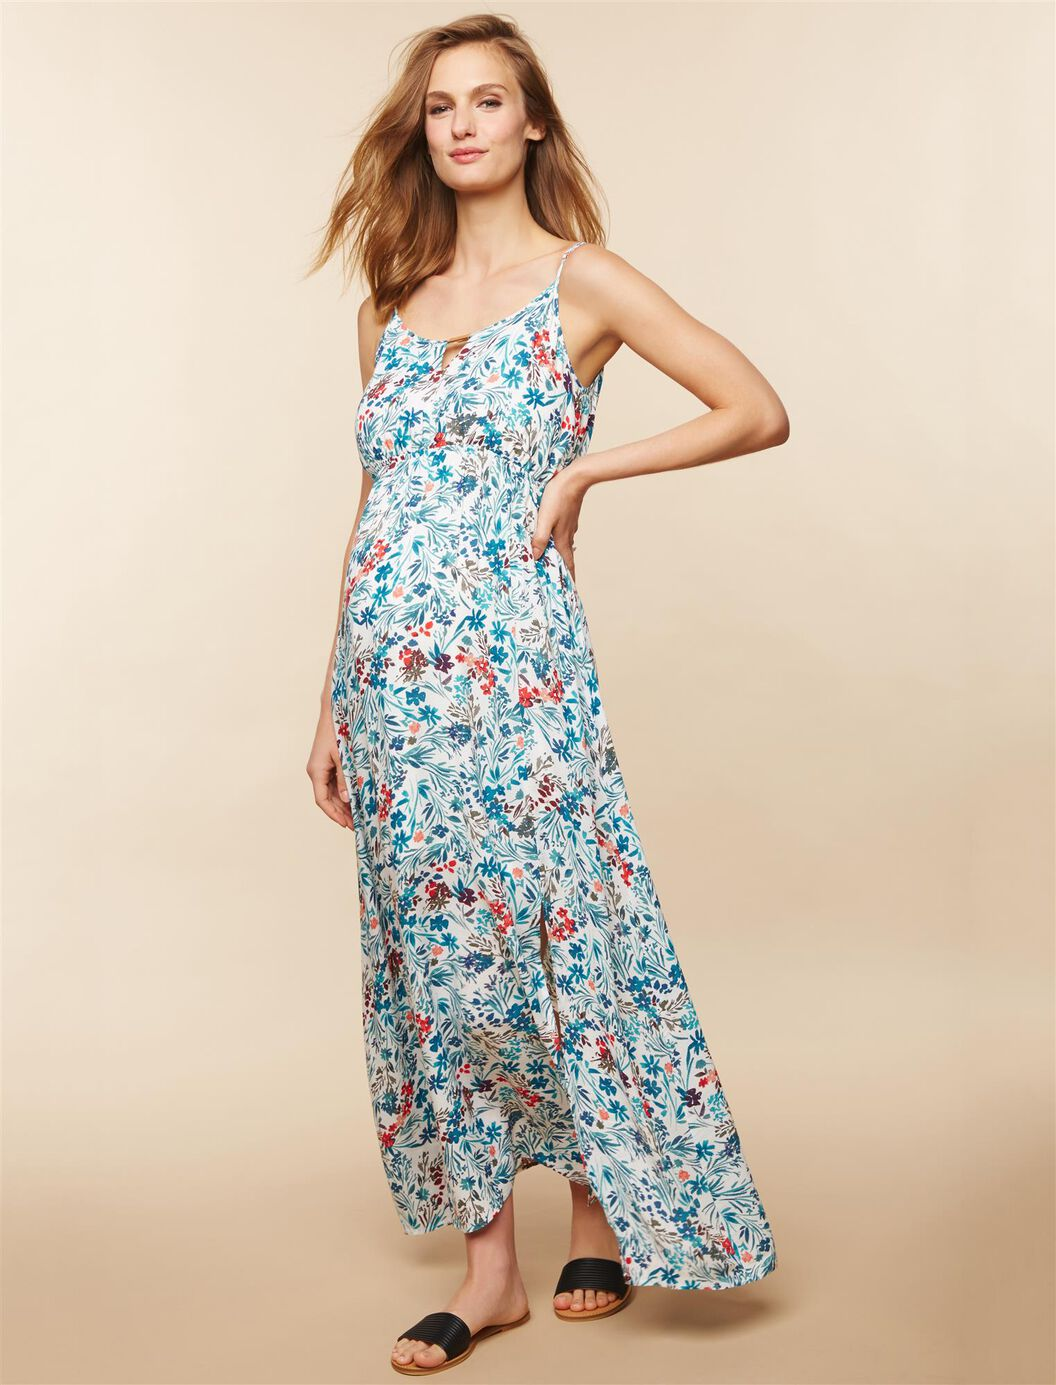 Floral Maternity Maxi Dress at Motherhood Maternity in Victor, NY | Tuggl